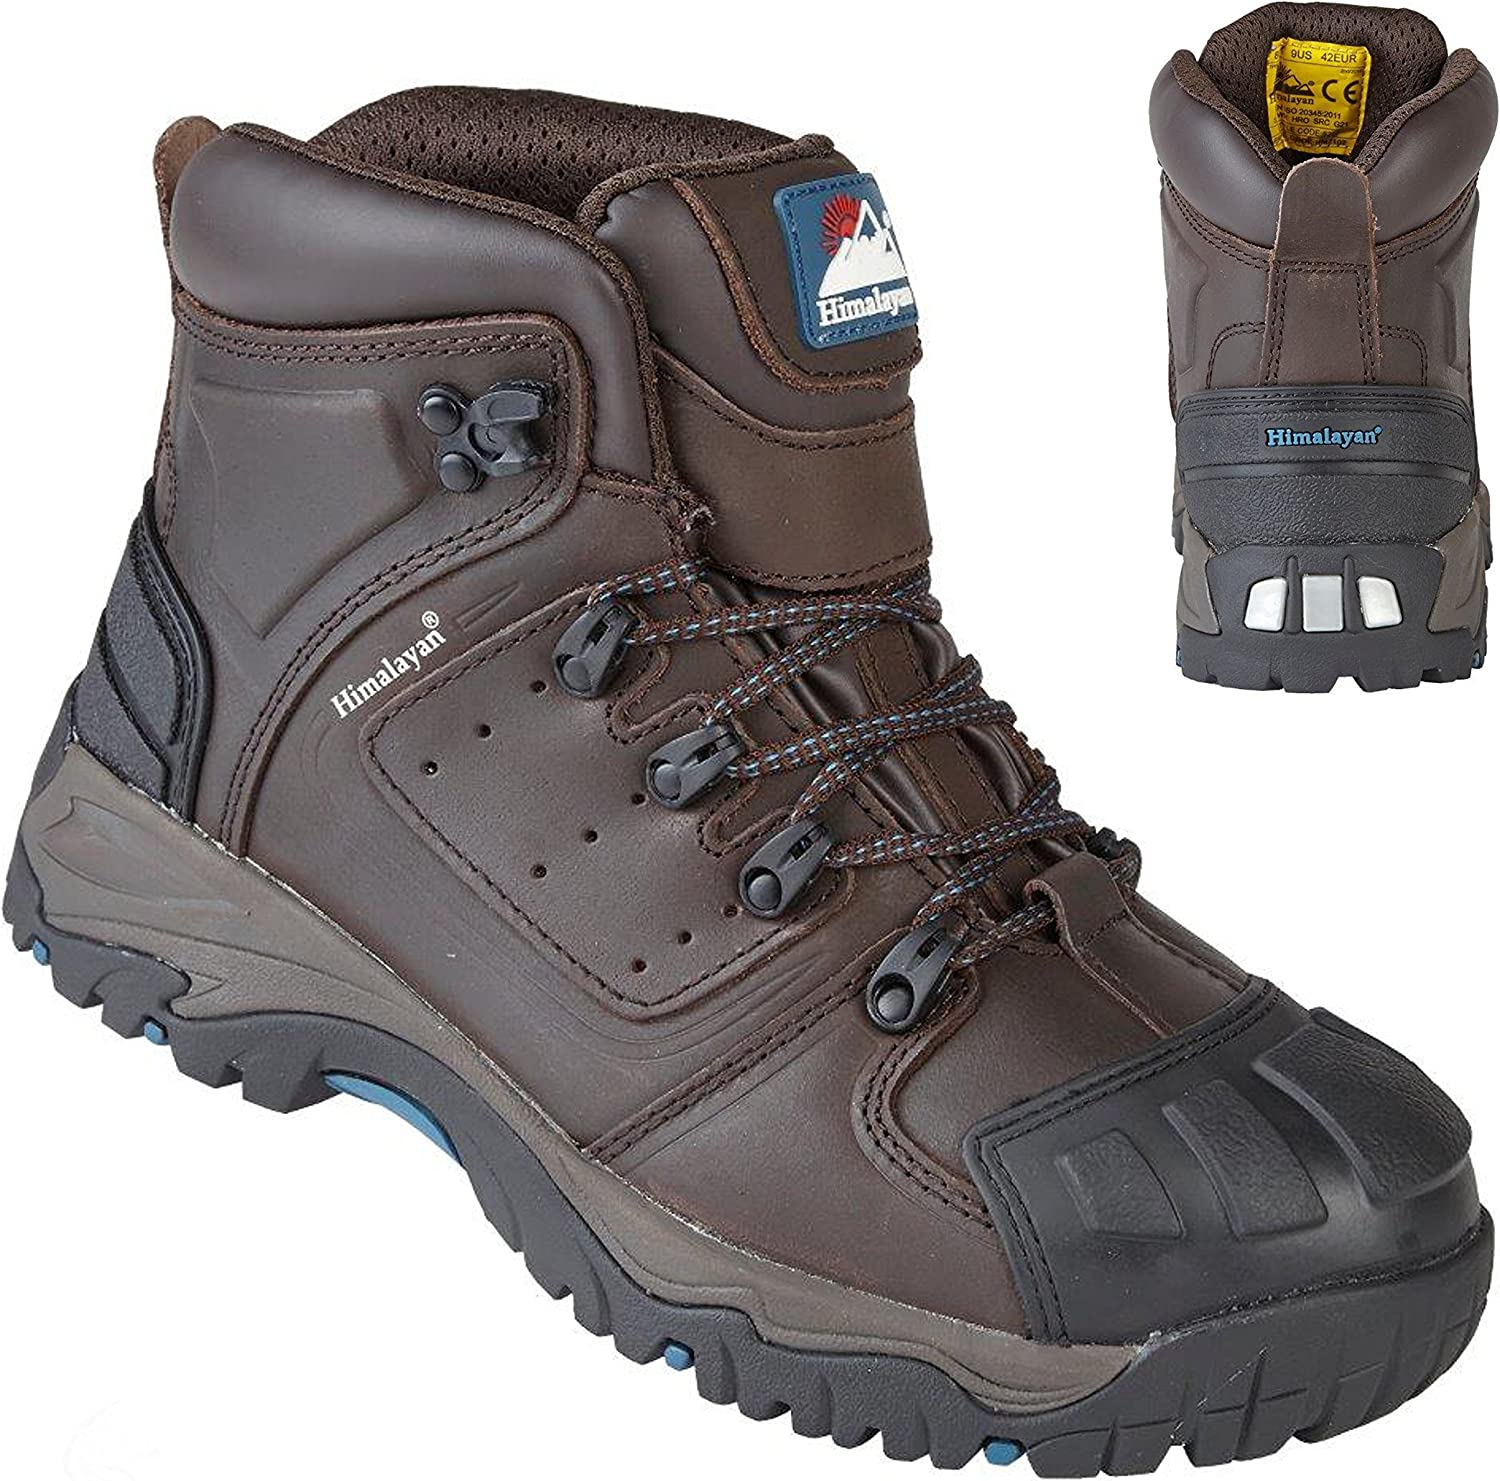 Himalayan Men's's 5207 Safety Boots